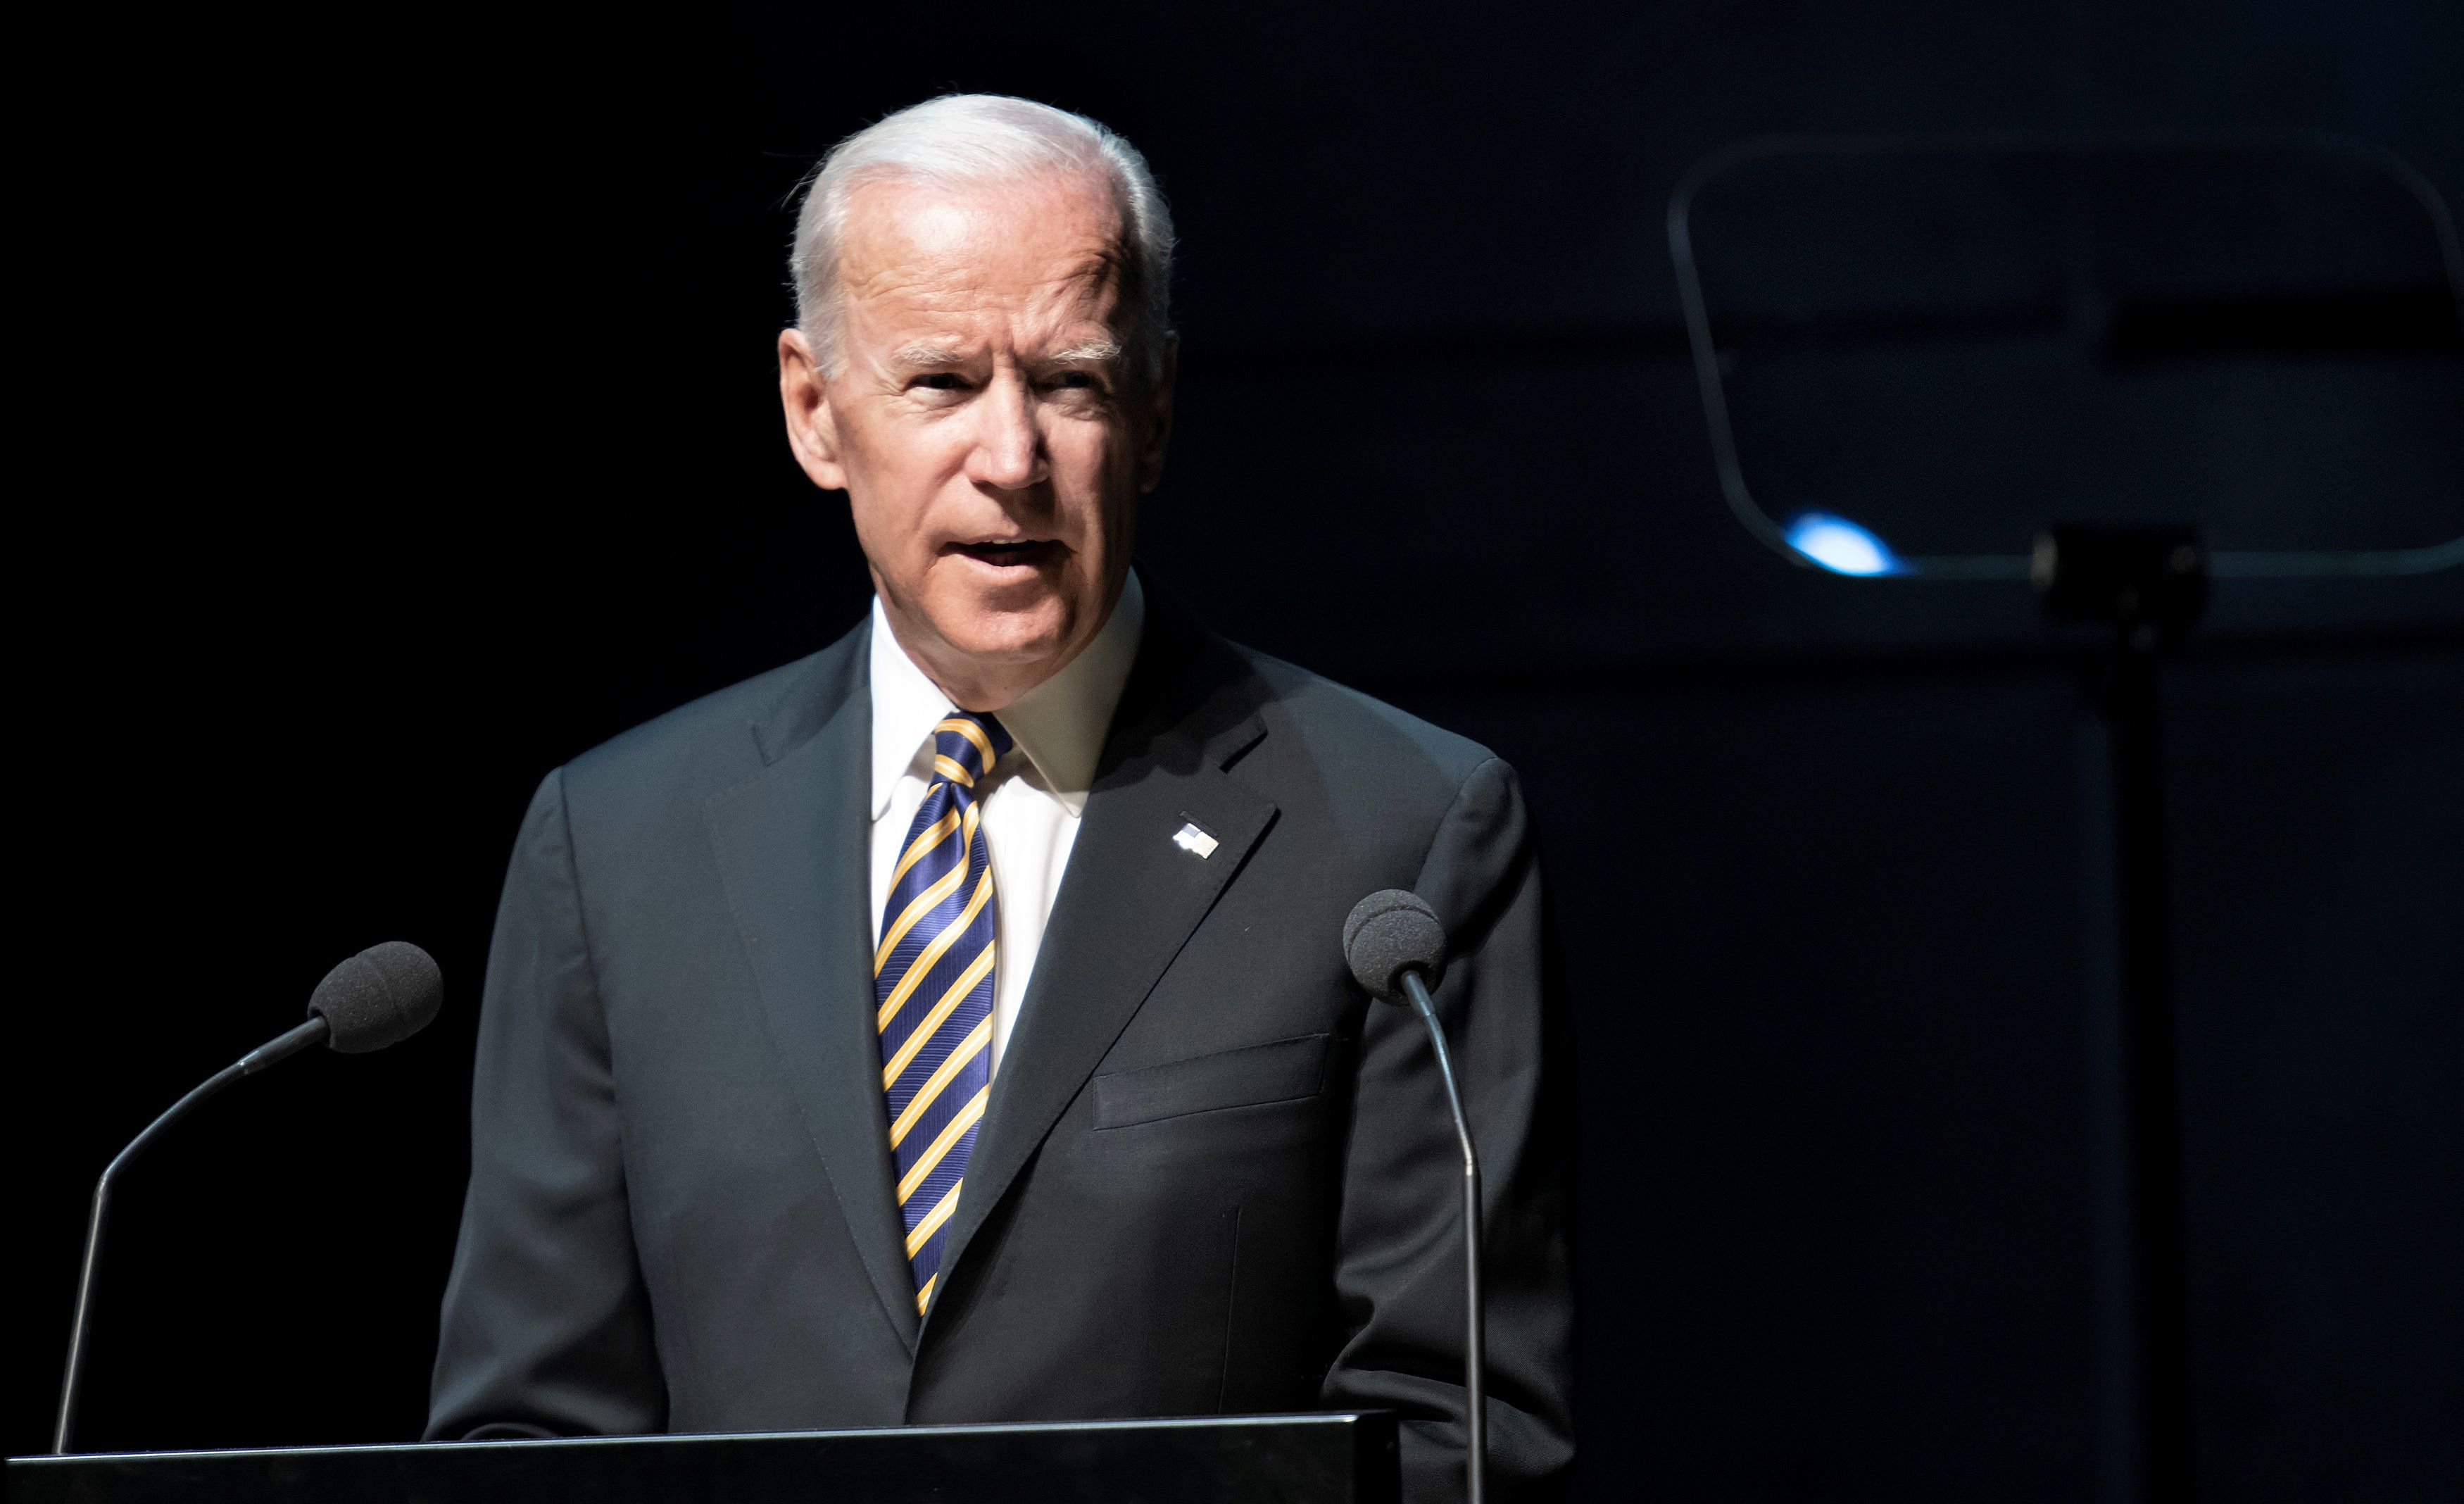 Joe Biden, 47th Vice President of the United States, speaks at the Copenhagen Democracy Summit, held in Copenhagen, Denmark June 22, 2018. Ritzau Scanpix/Keld Navntoft via REUTERS.   ATTENTION EDITORS - THIS IMAGE HAS BEEN SUPPLIED BY A THIRD PARTY. DENMARK OUT. NO COMMERCIAL OR EDITORIAL SALES IN DENMARK